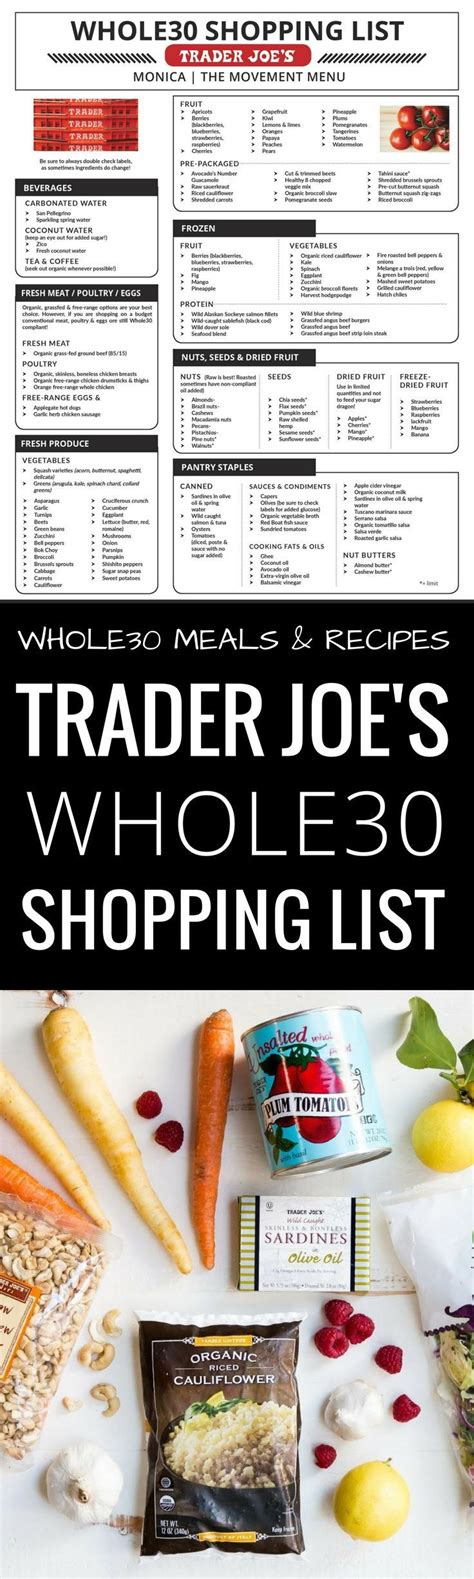 trader joes food 25 best ideas about whole30 shopping list on